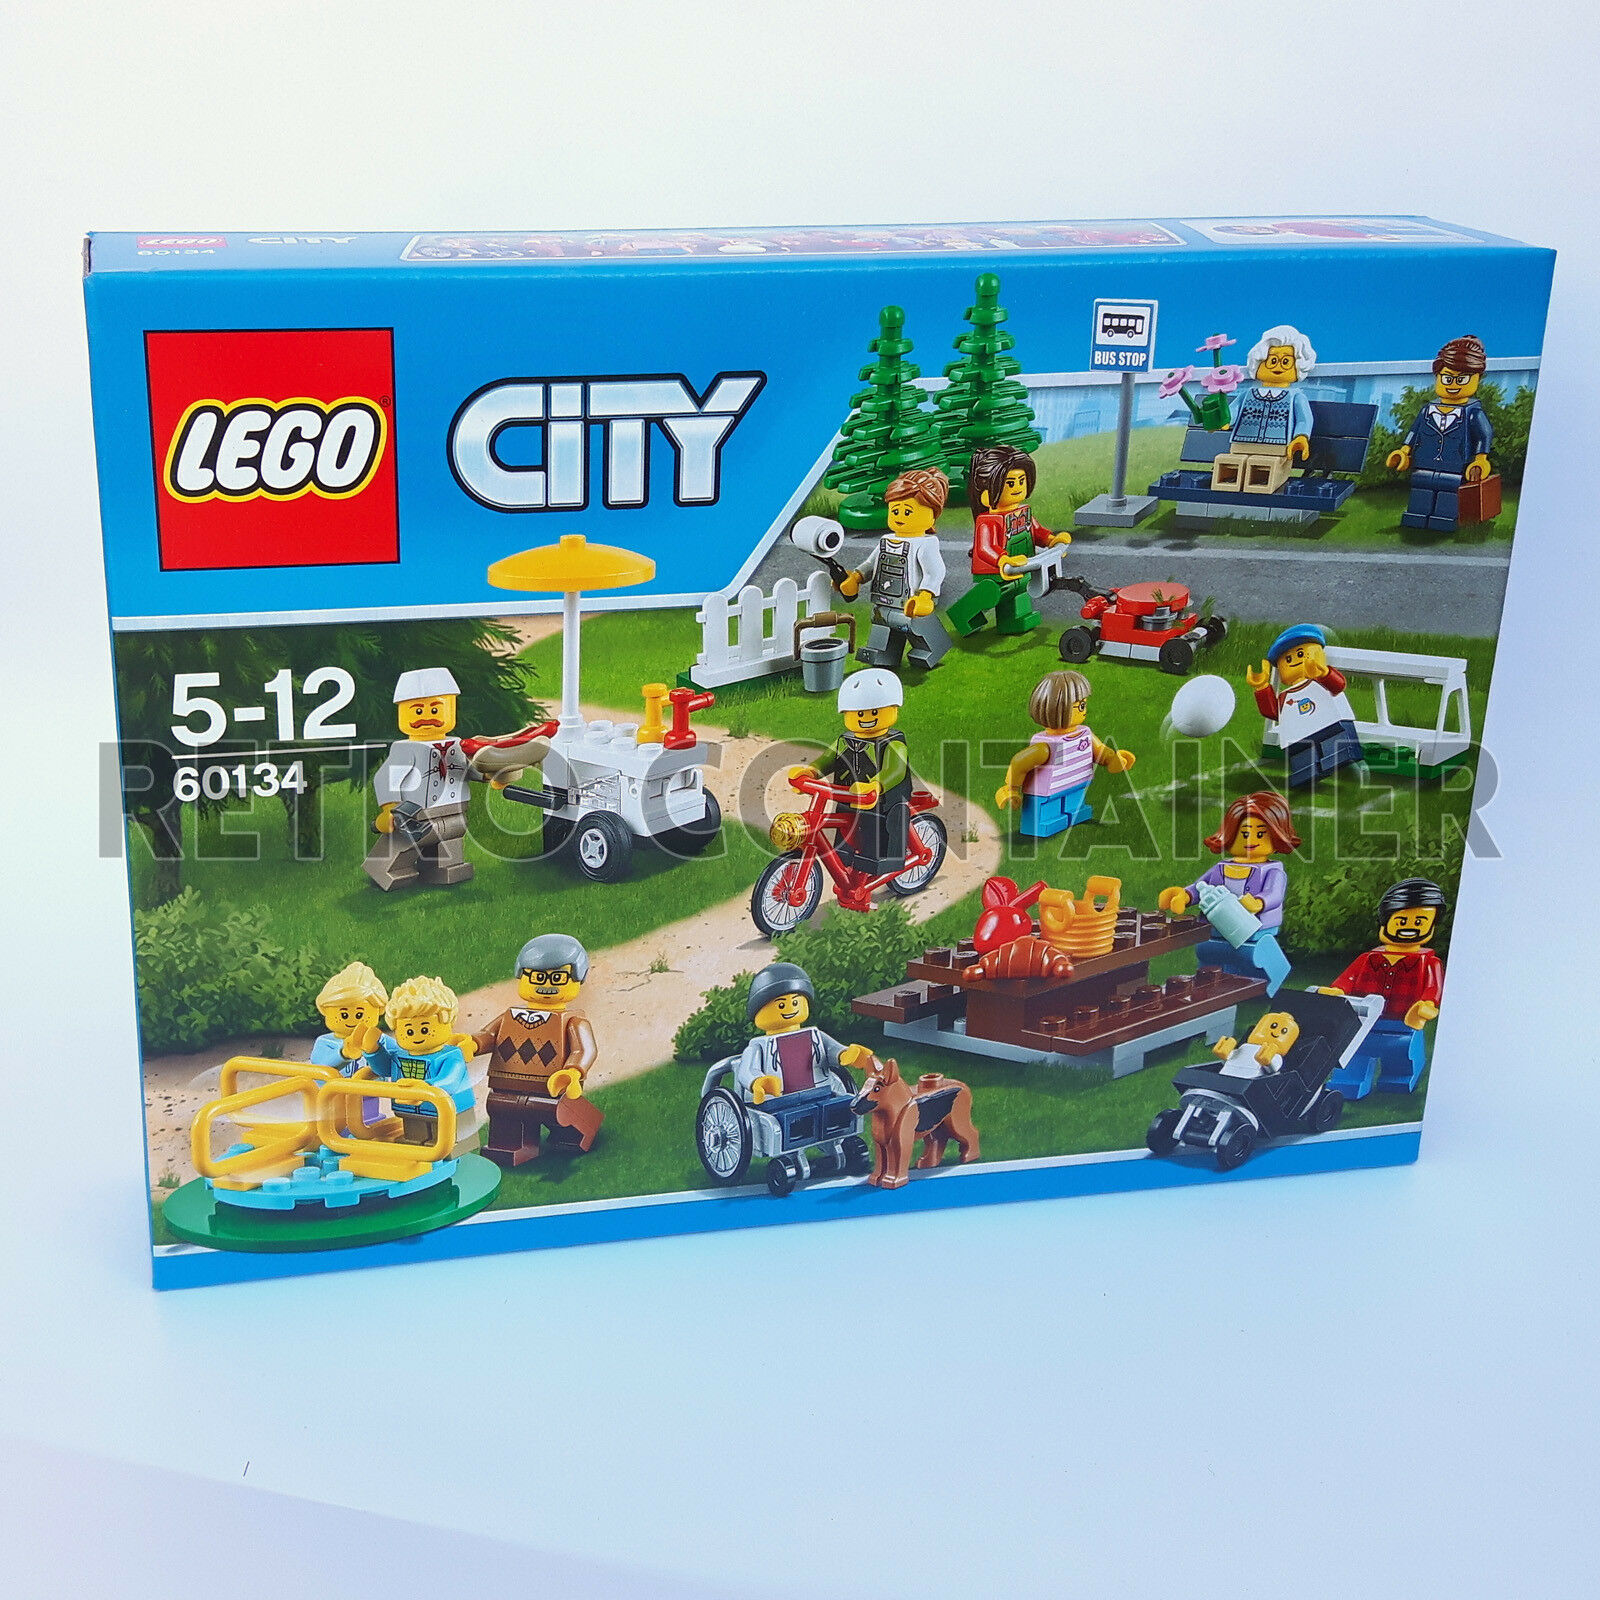 LEGO NEW Set MISB Sigillato 60134 Fun in in in The Park Minifigures City People Pack 7d418d